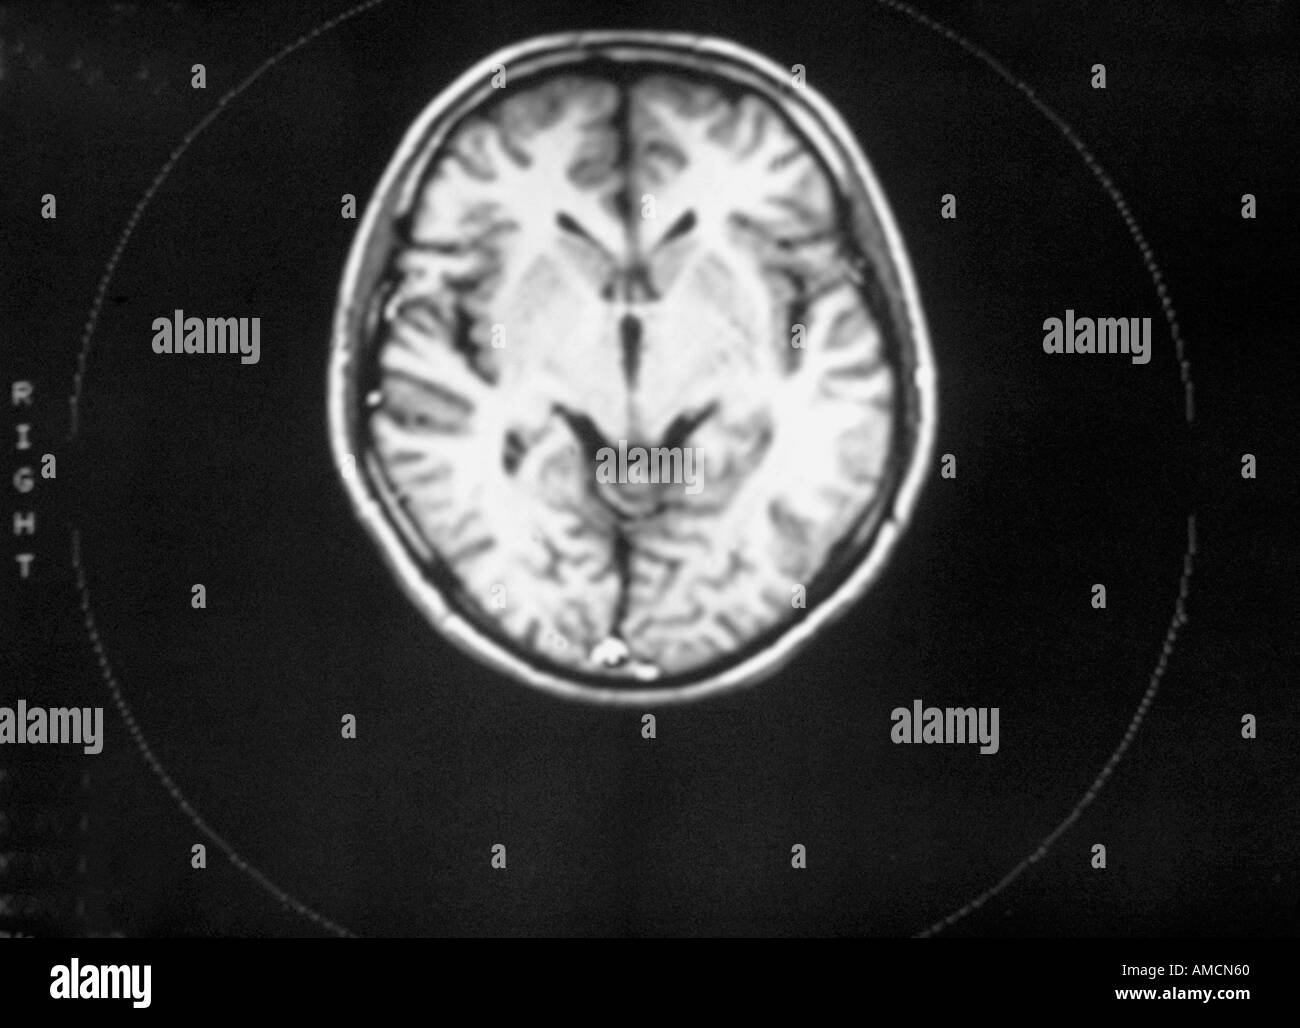 Normal Brain Mri Black and White Stock Photos & Images - Alamy